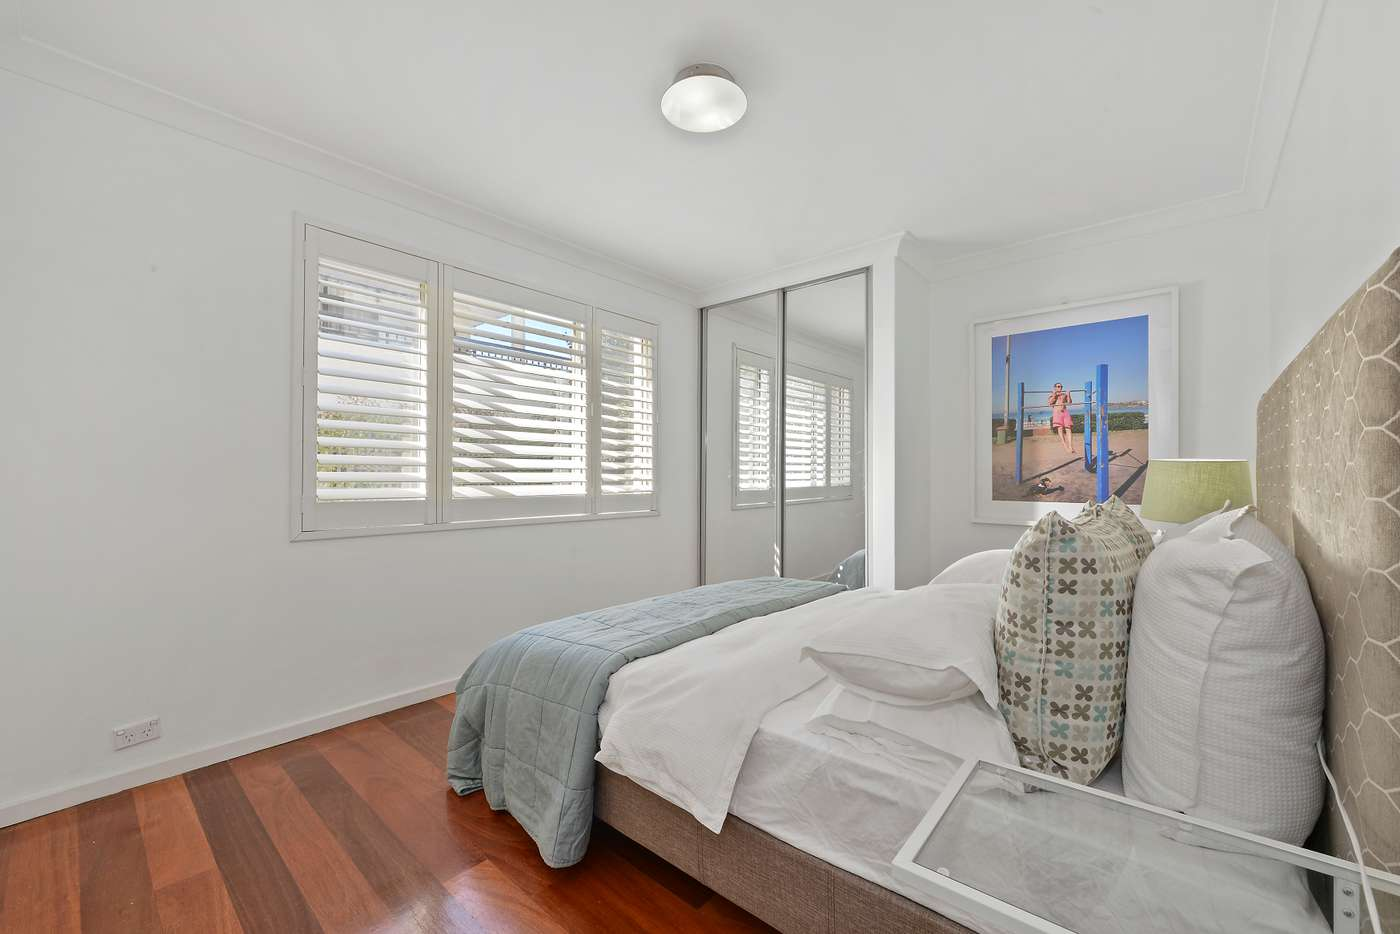 Fifth view of Homely apartment listing, 6/285 Bondi Road, Bondi NSW 2026